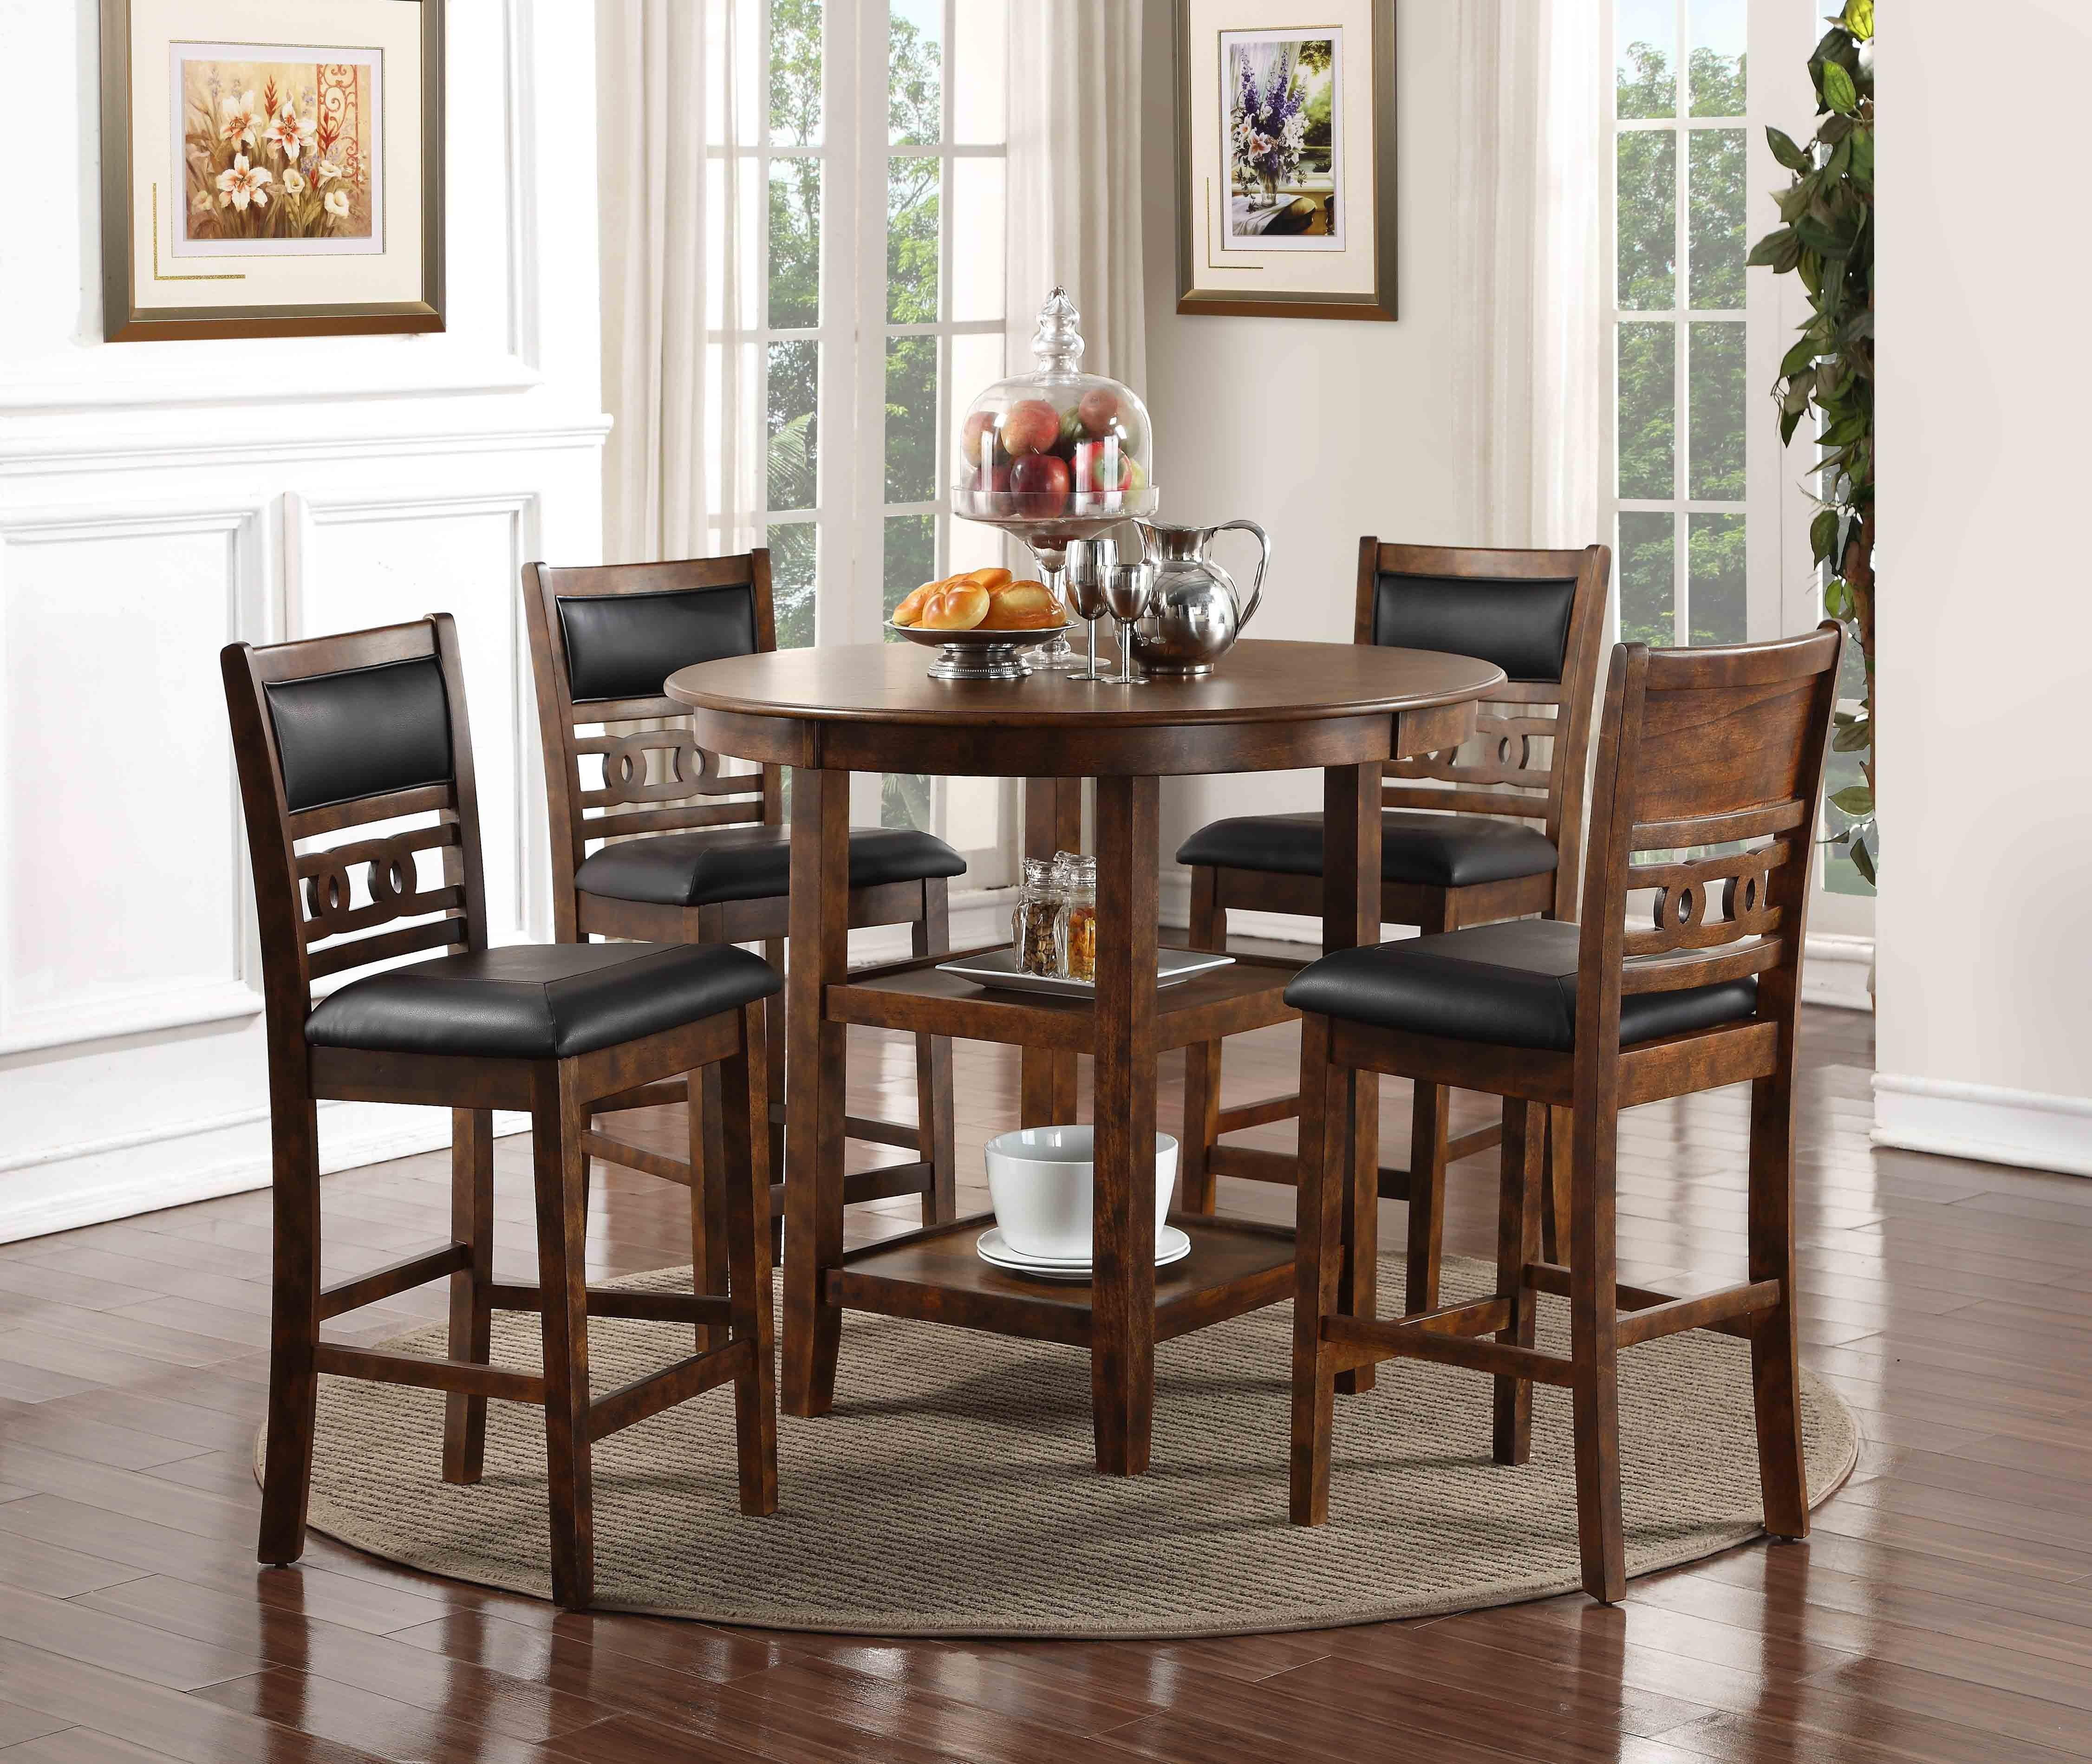 Dining Room Furniture Product: The Gia Counter-Height Dining Room Collection